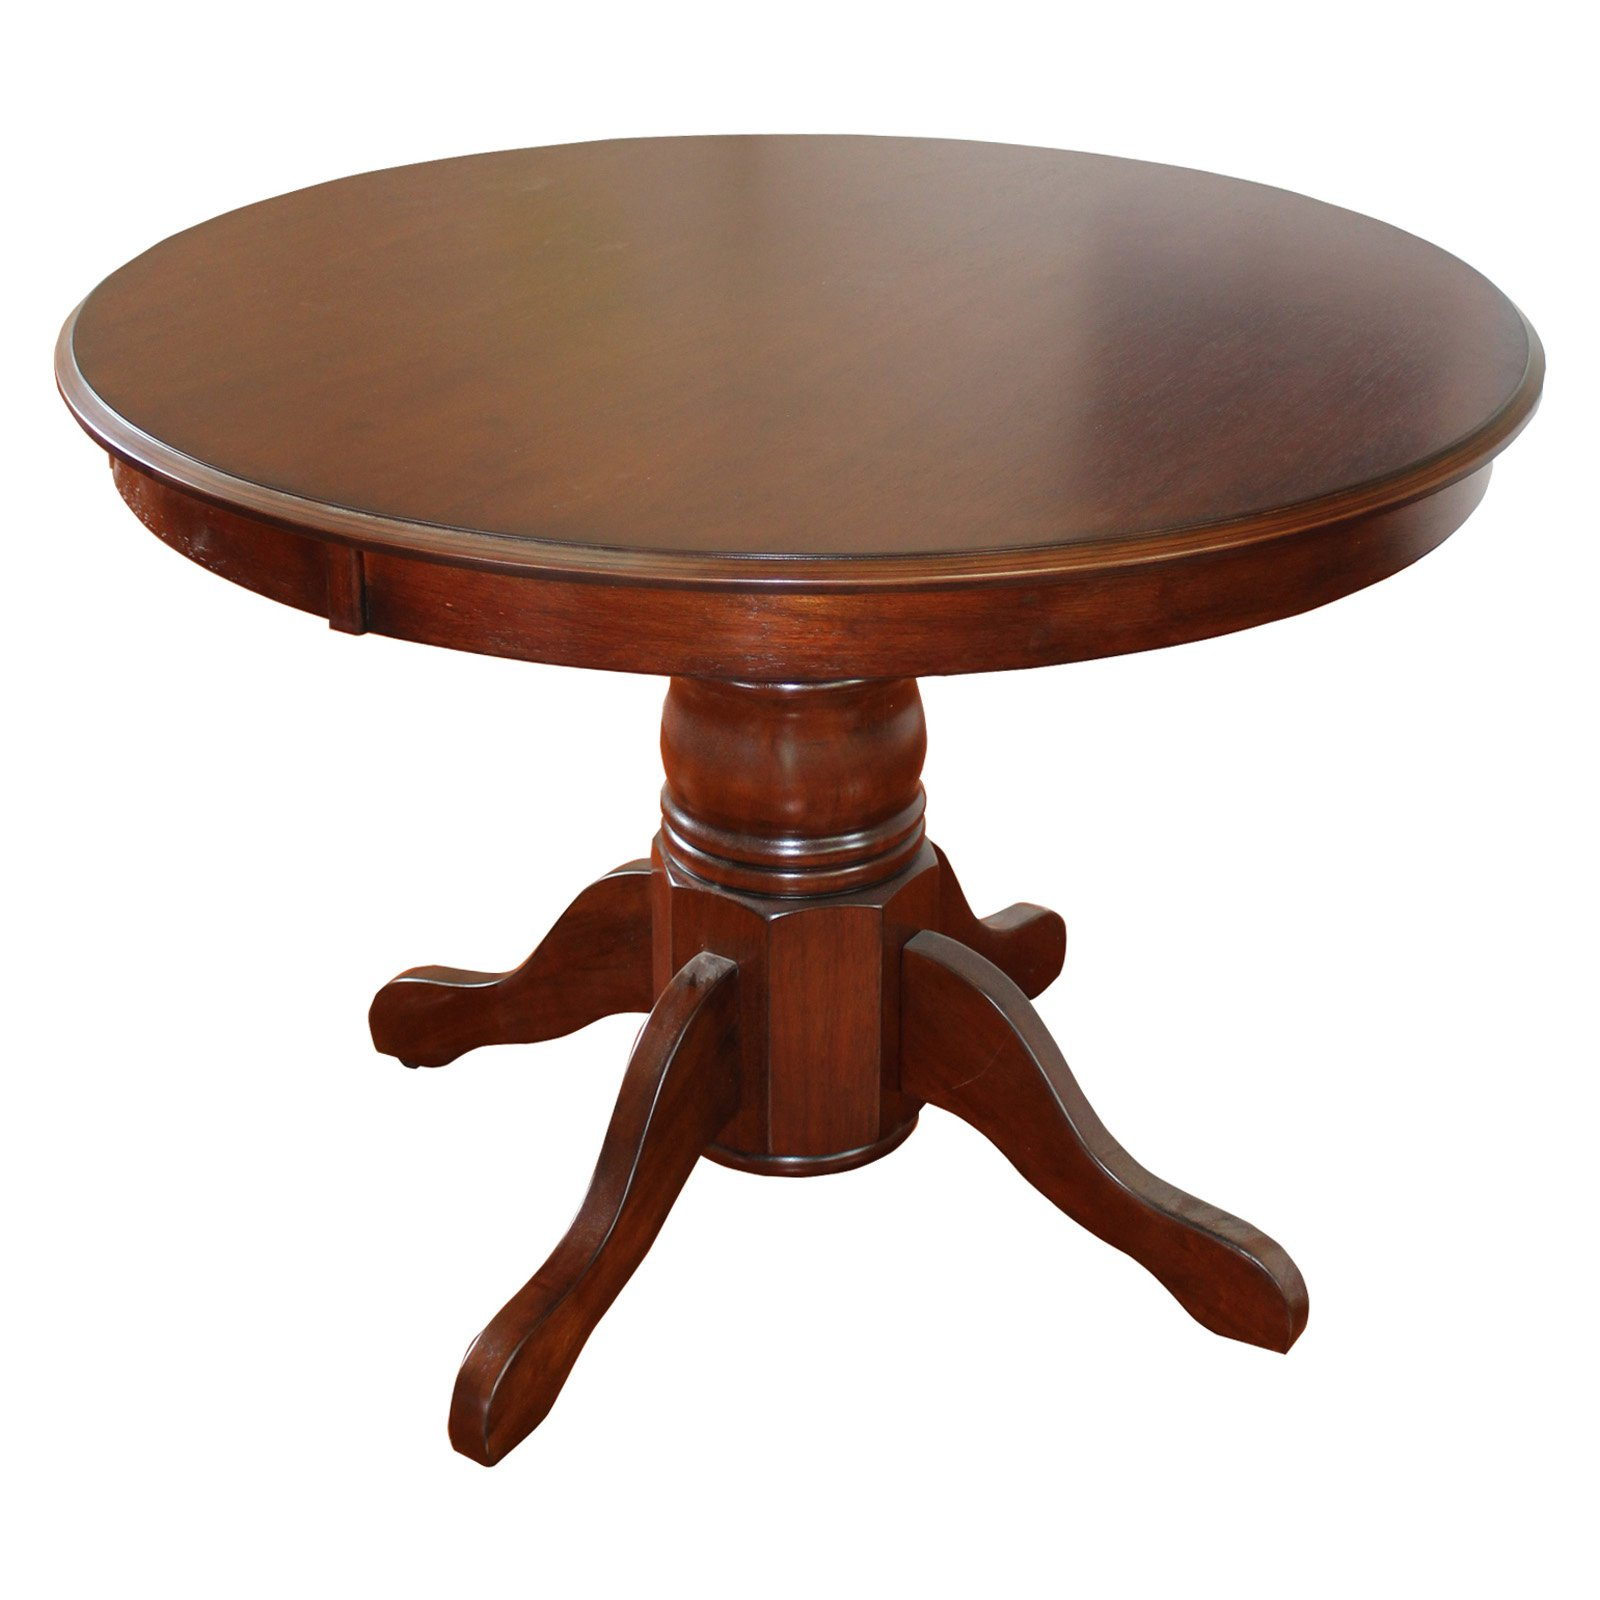 Classic Cherry Finished Pedestal Dining Table by Home Styles